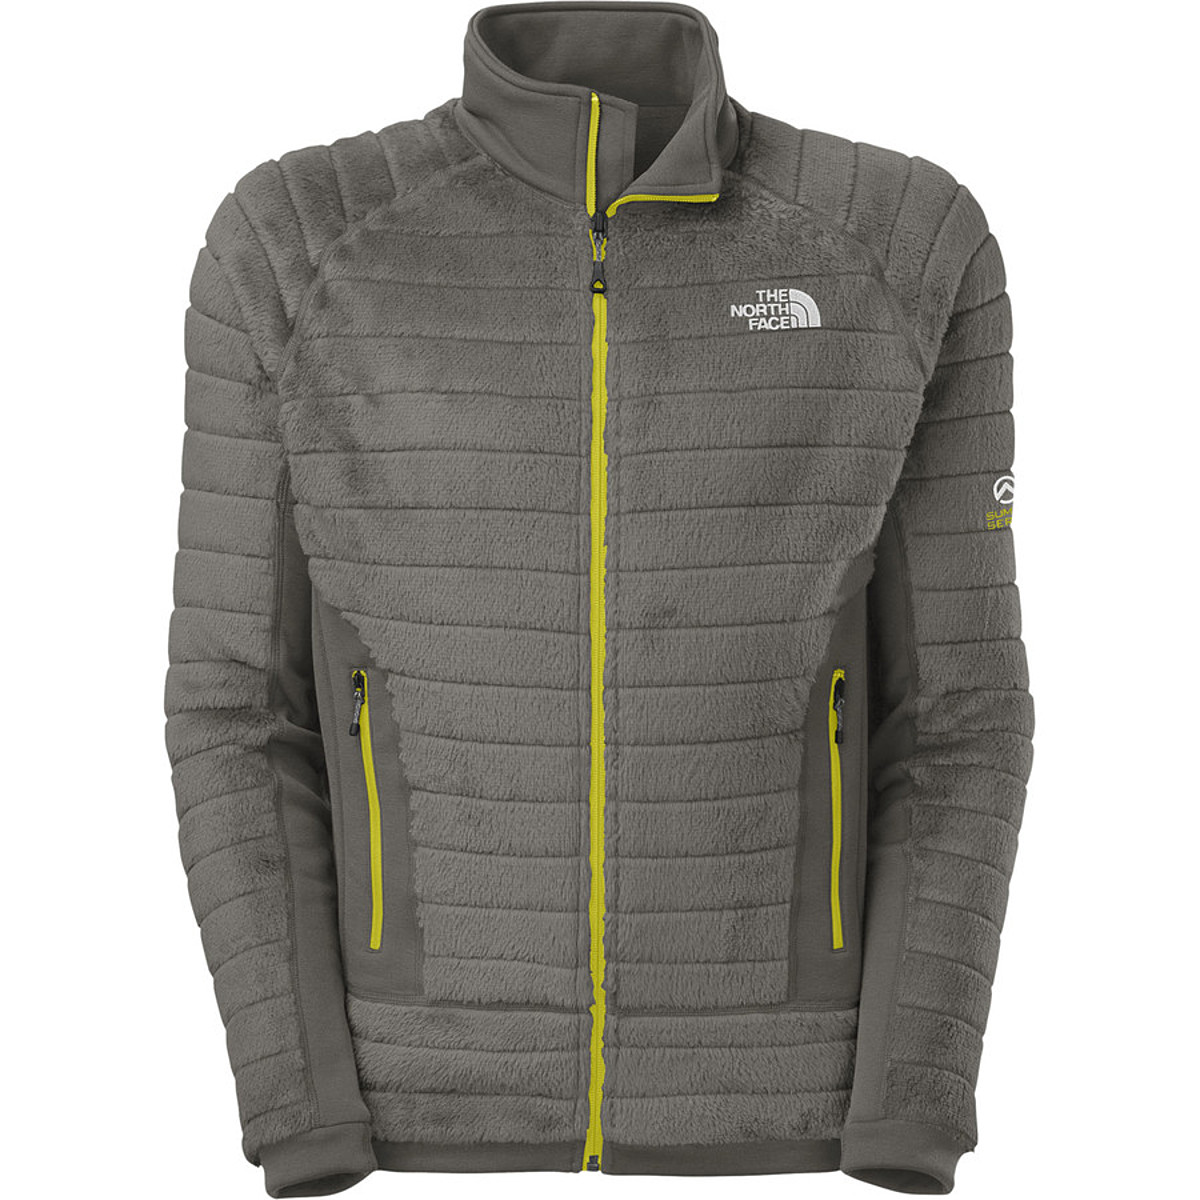 The North Face Radium Hi-Loft Jacket